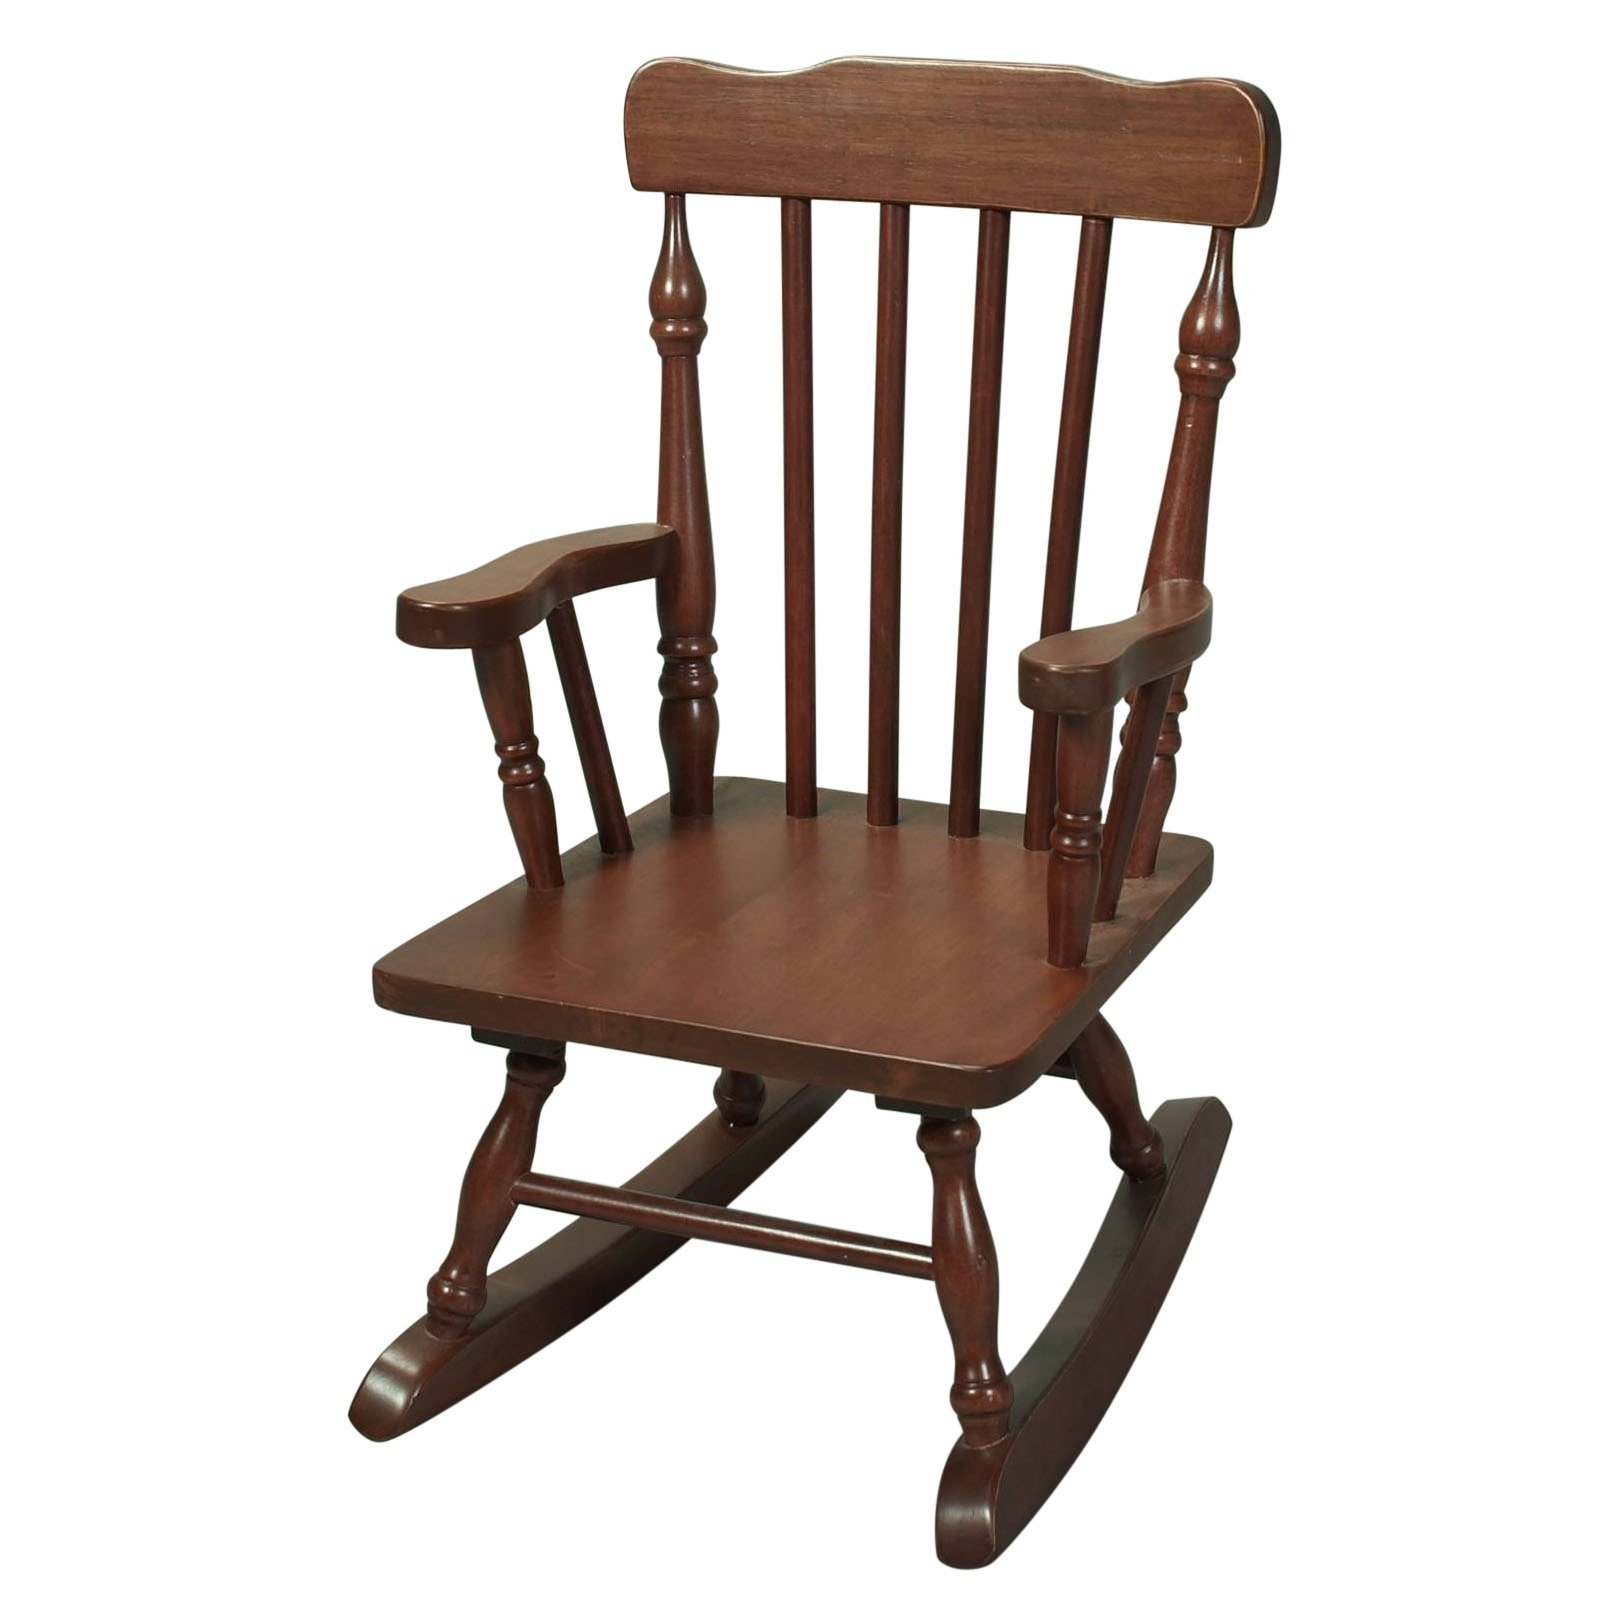 Most Popular Child Colonial Rocking Chair – Walmart Inside Rocking Chairs For Toddlers (View 7 of 20)